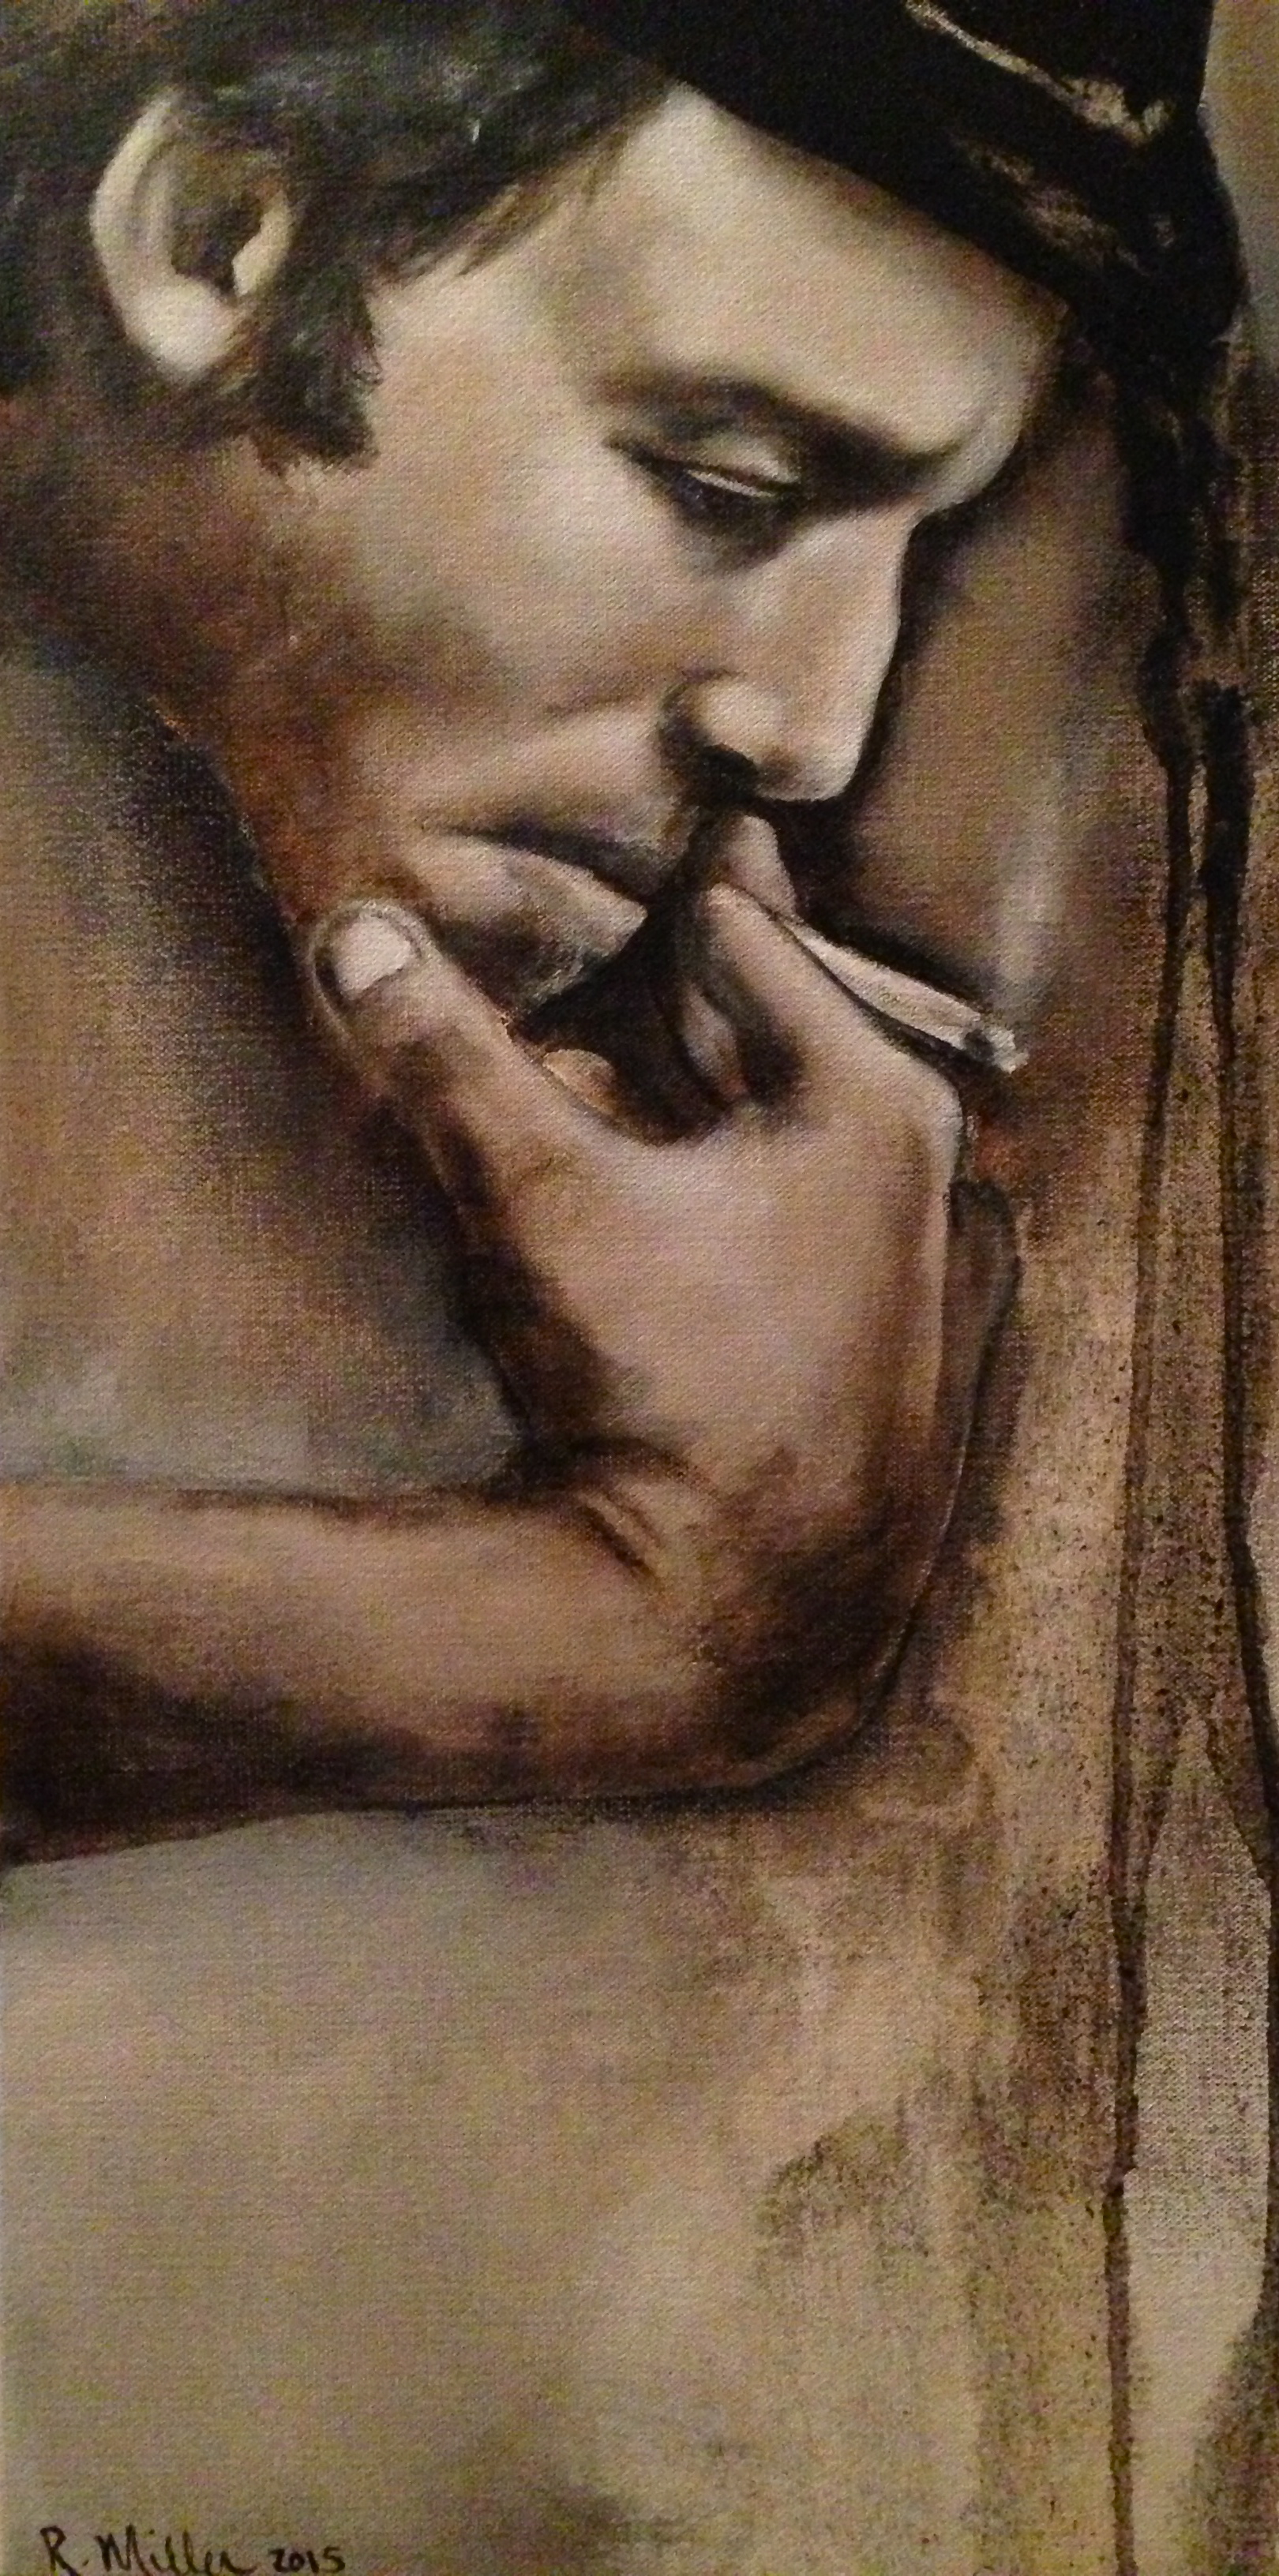 """Tom Waits, 2015   Oil & acrylic on canvas  By Rebecca Miller  """"The beginning of it starts at the end""""― Tom Waits"""